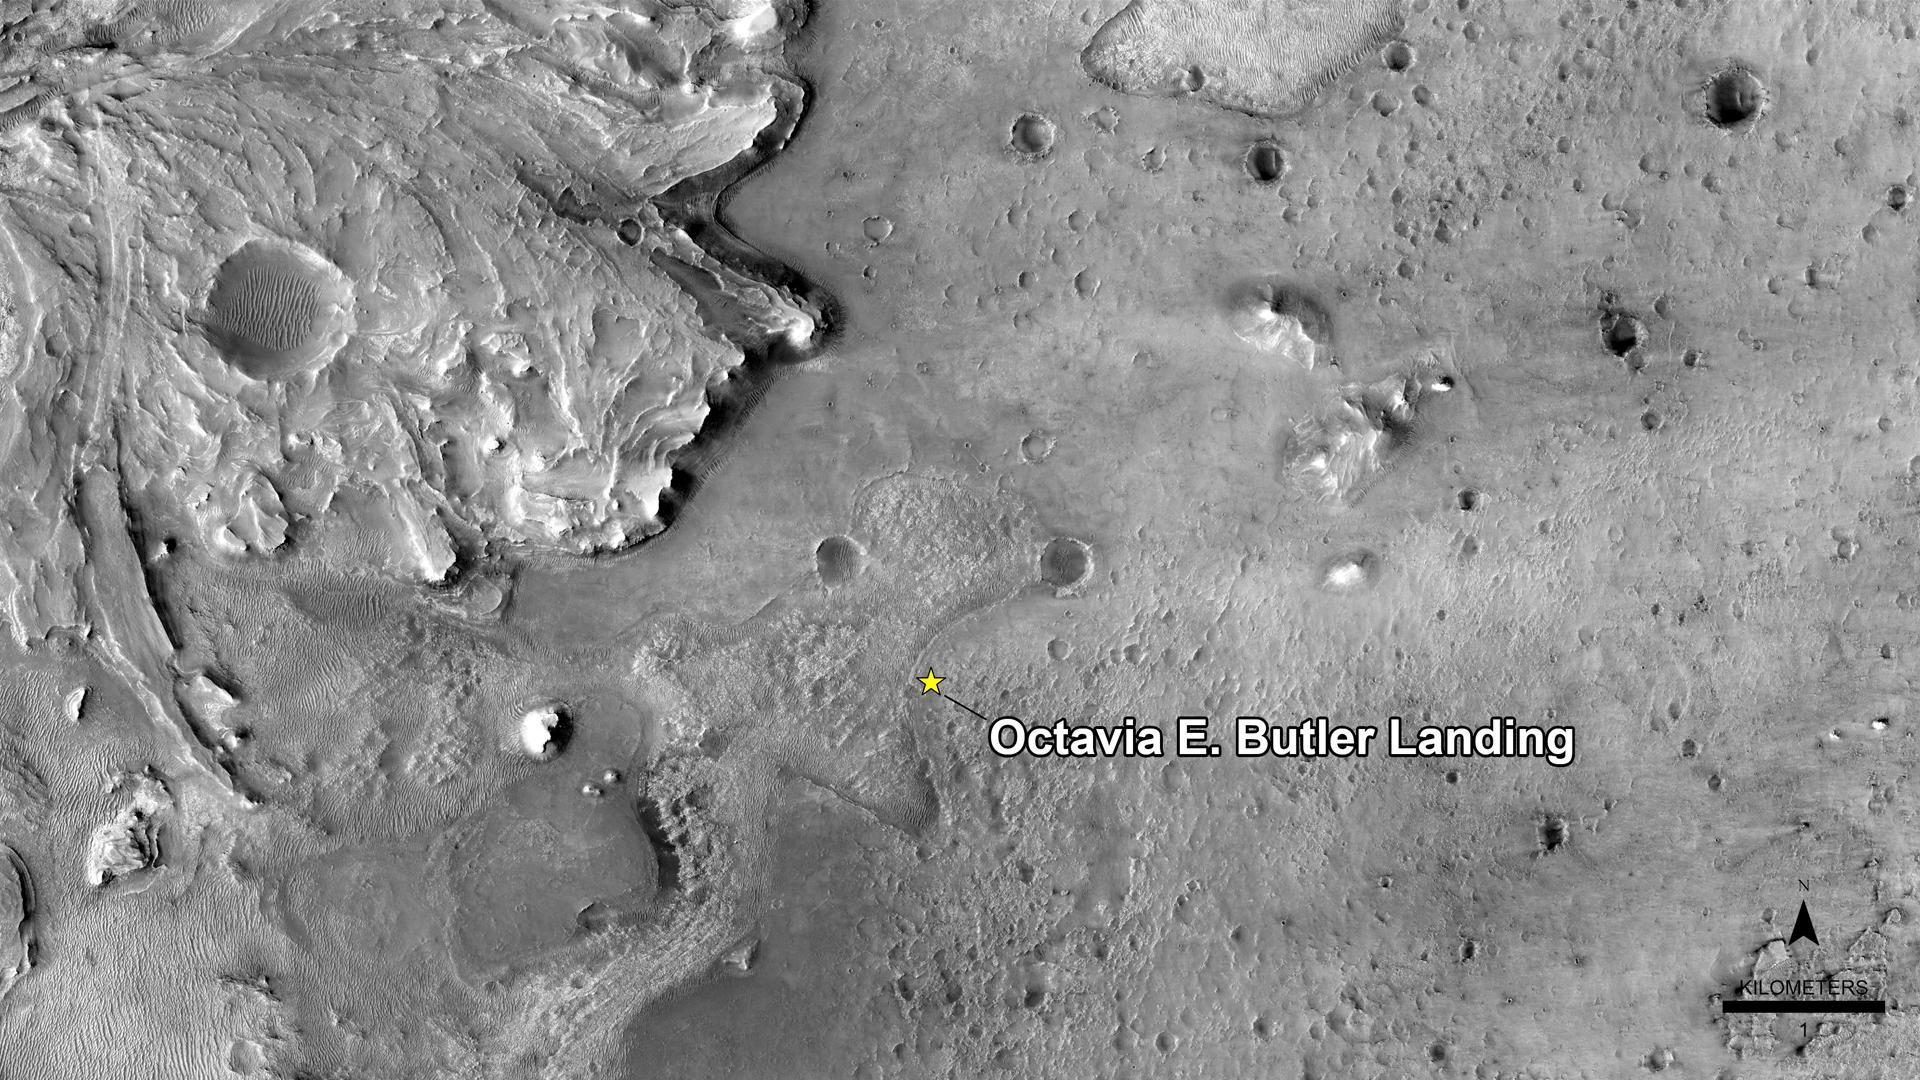 NASA has named the landing site of the agencys Perseverance rover after the science fiction author Octavia E. Butler, as seen in this image from the High Resolution Imaging Experiment camera aboard NASAs Mars Reconnaissance Orbiter.